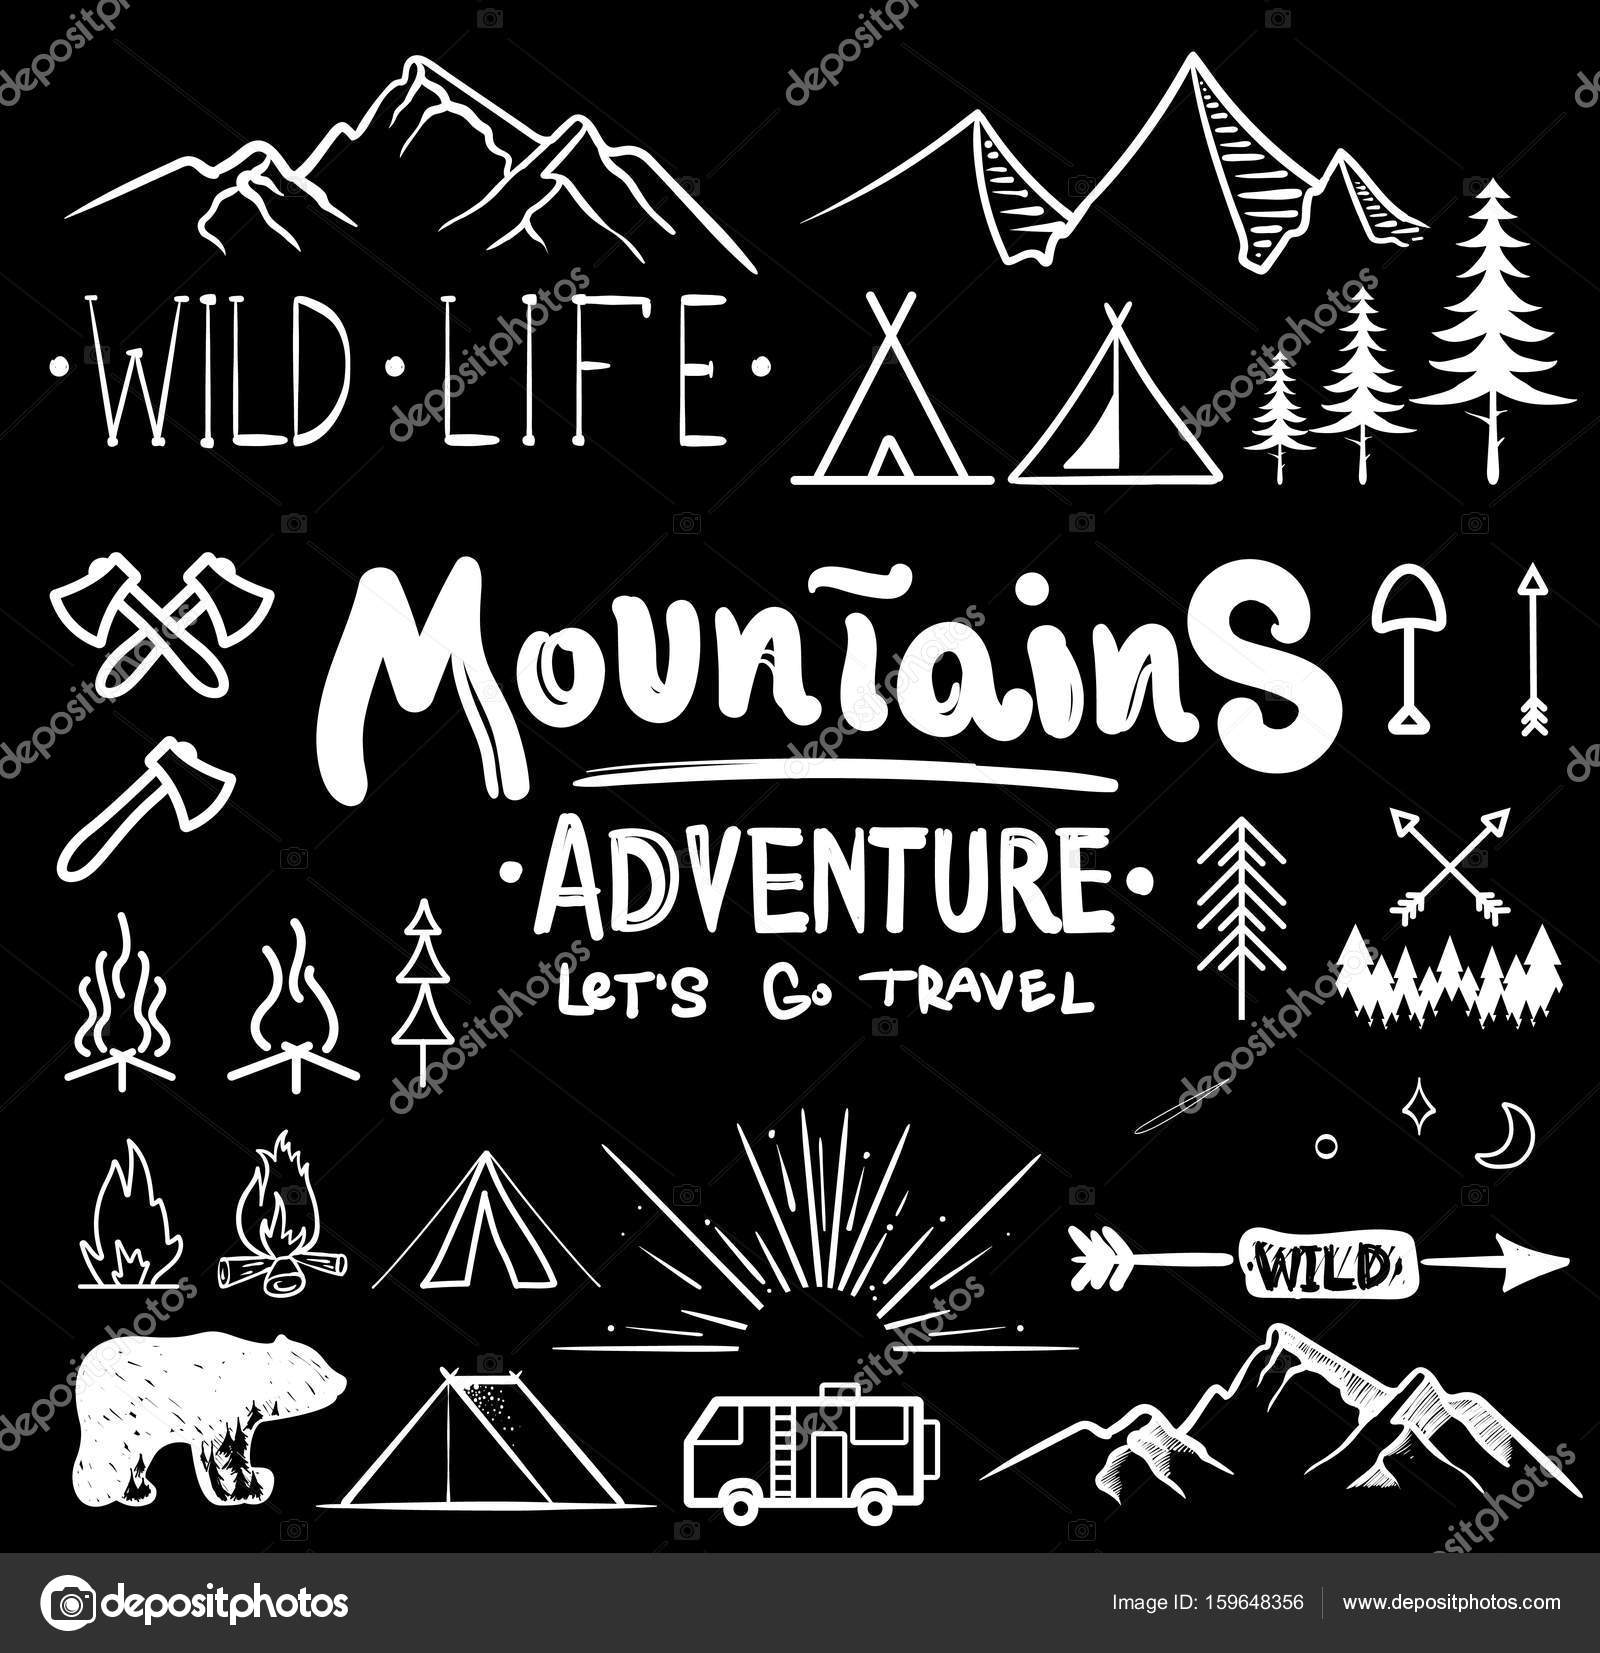 Download royalty-free Black and white camping collection of icon made with ink and brush. Doodle style. Hand drawn set of adventure items. campfire